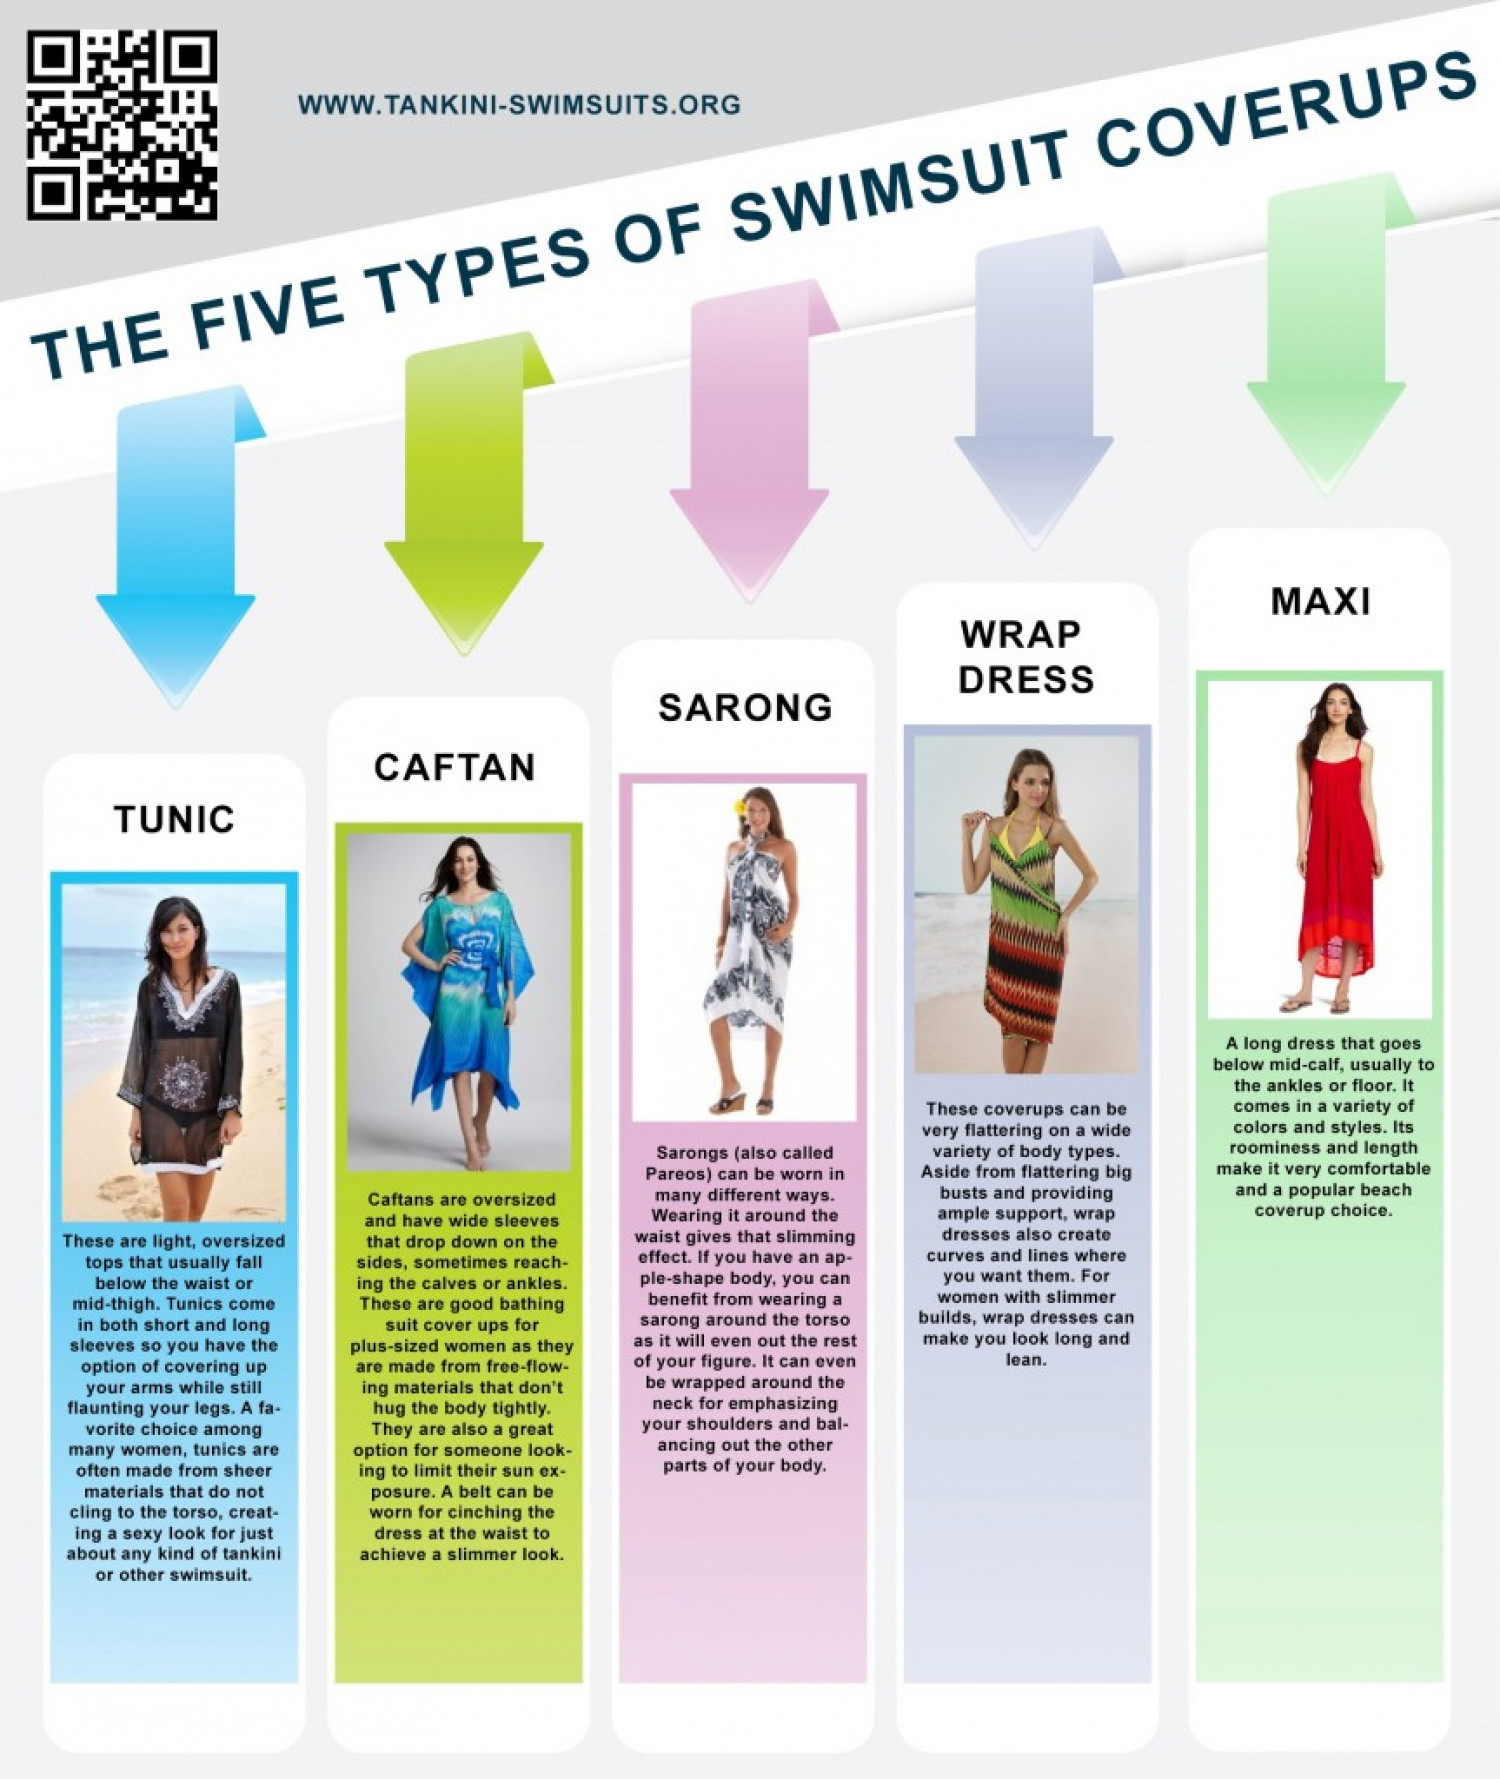 The Five Types of Swimsuit Coverups Infographic